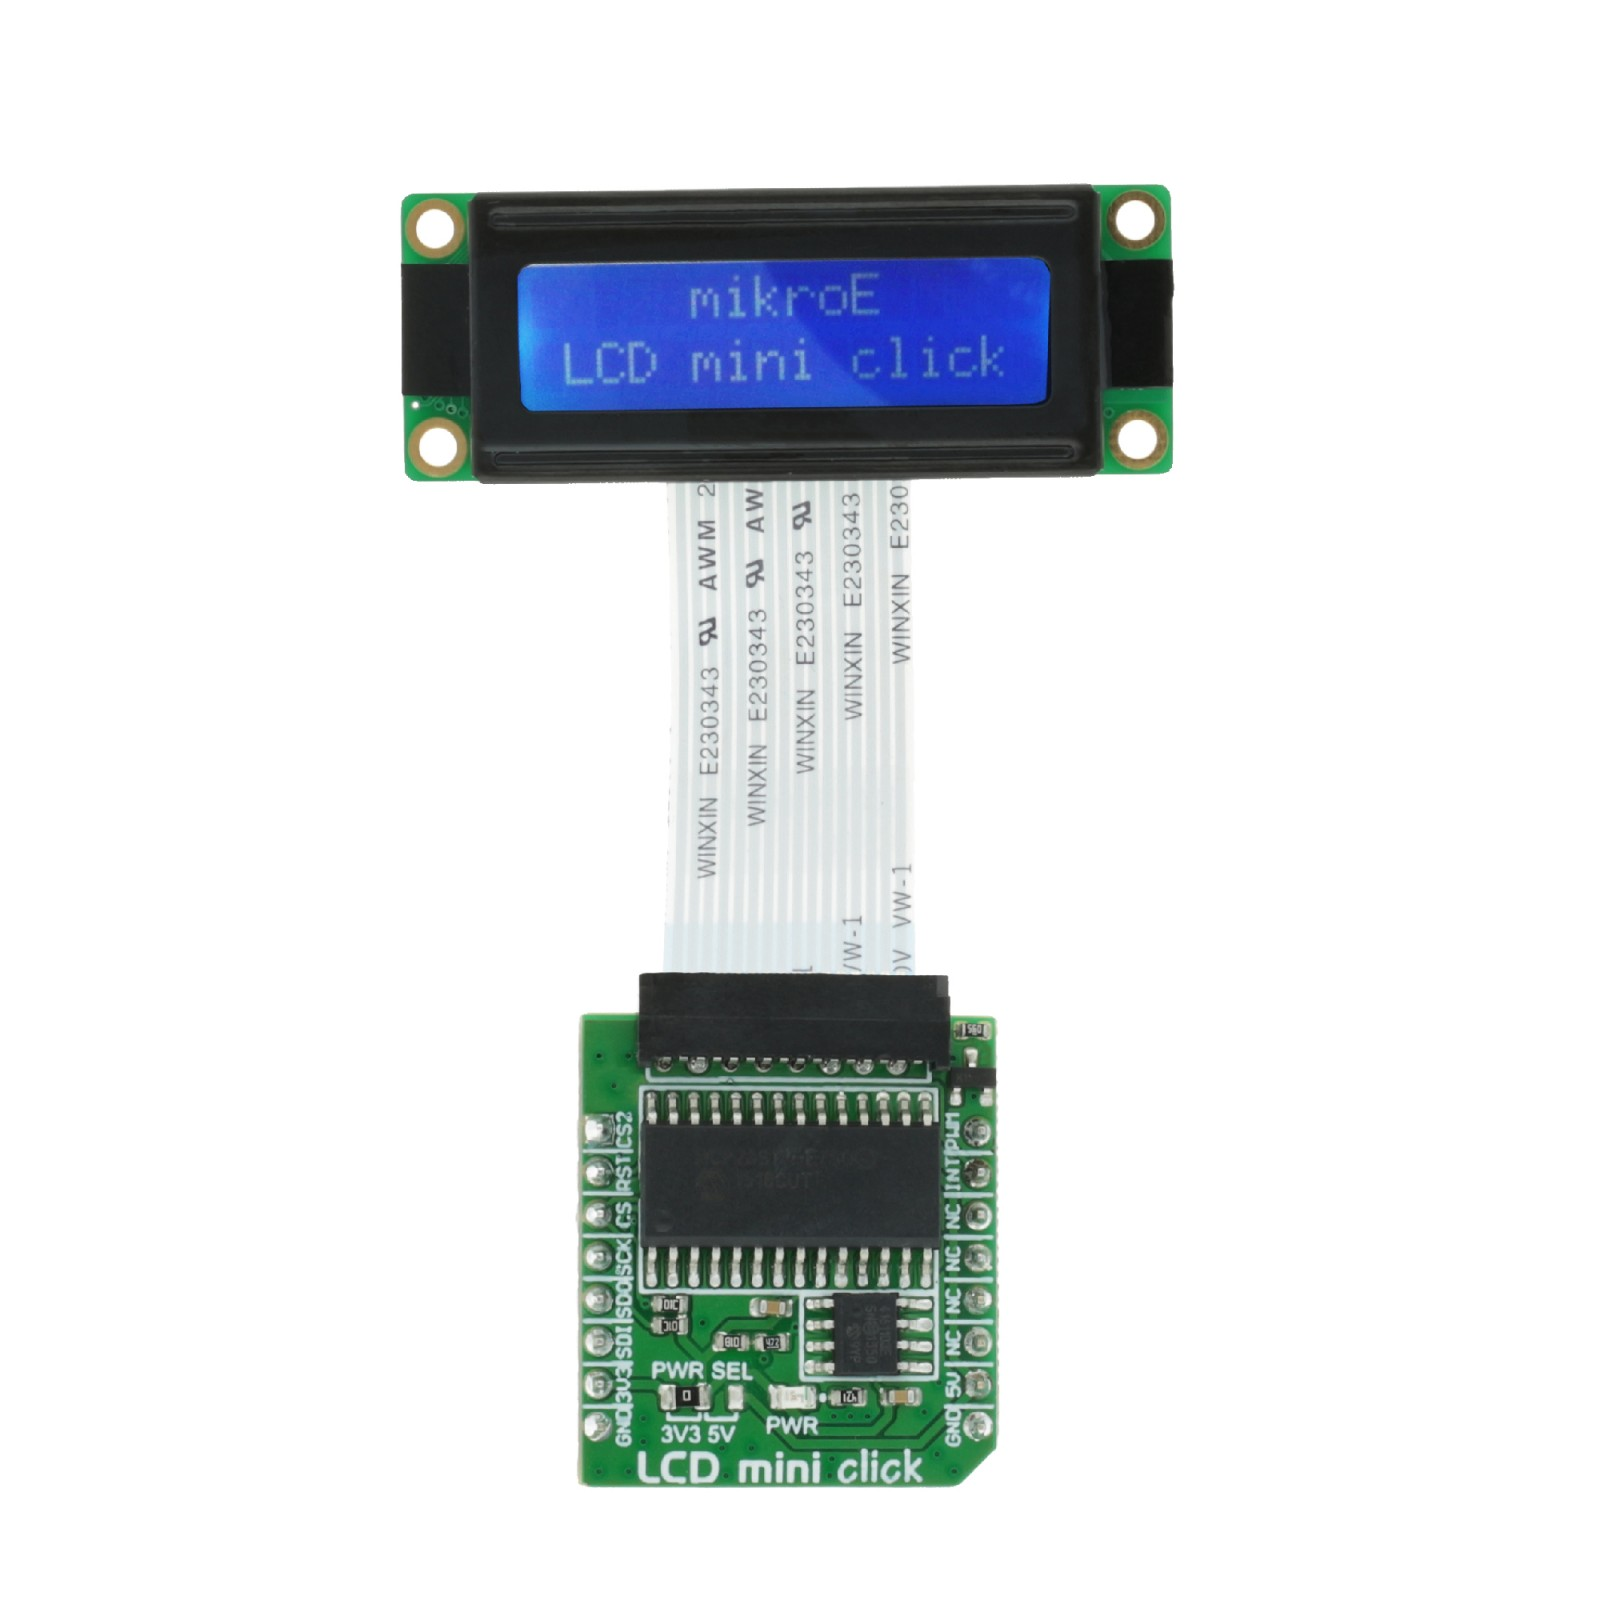 Lcd Mini Click Displays 16x2 Monochrome Characters On A Display Interfacing With Avr Electronic Circuits And Diagram Mgctlbxnmzp Mgctlbxv5112 Mgctlbxlc Mgctlbxpprestashop